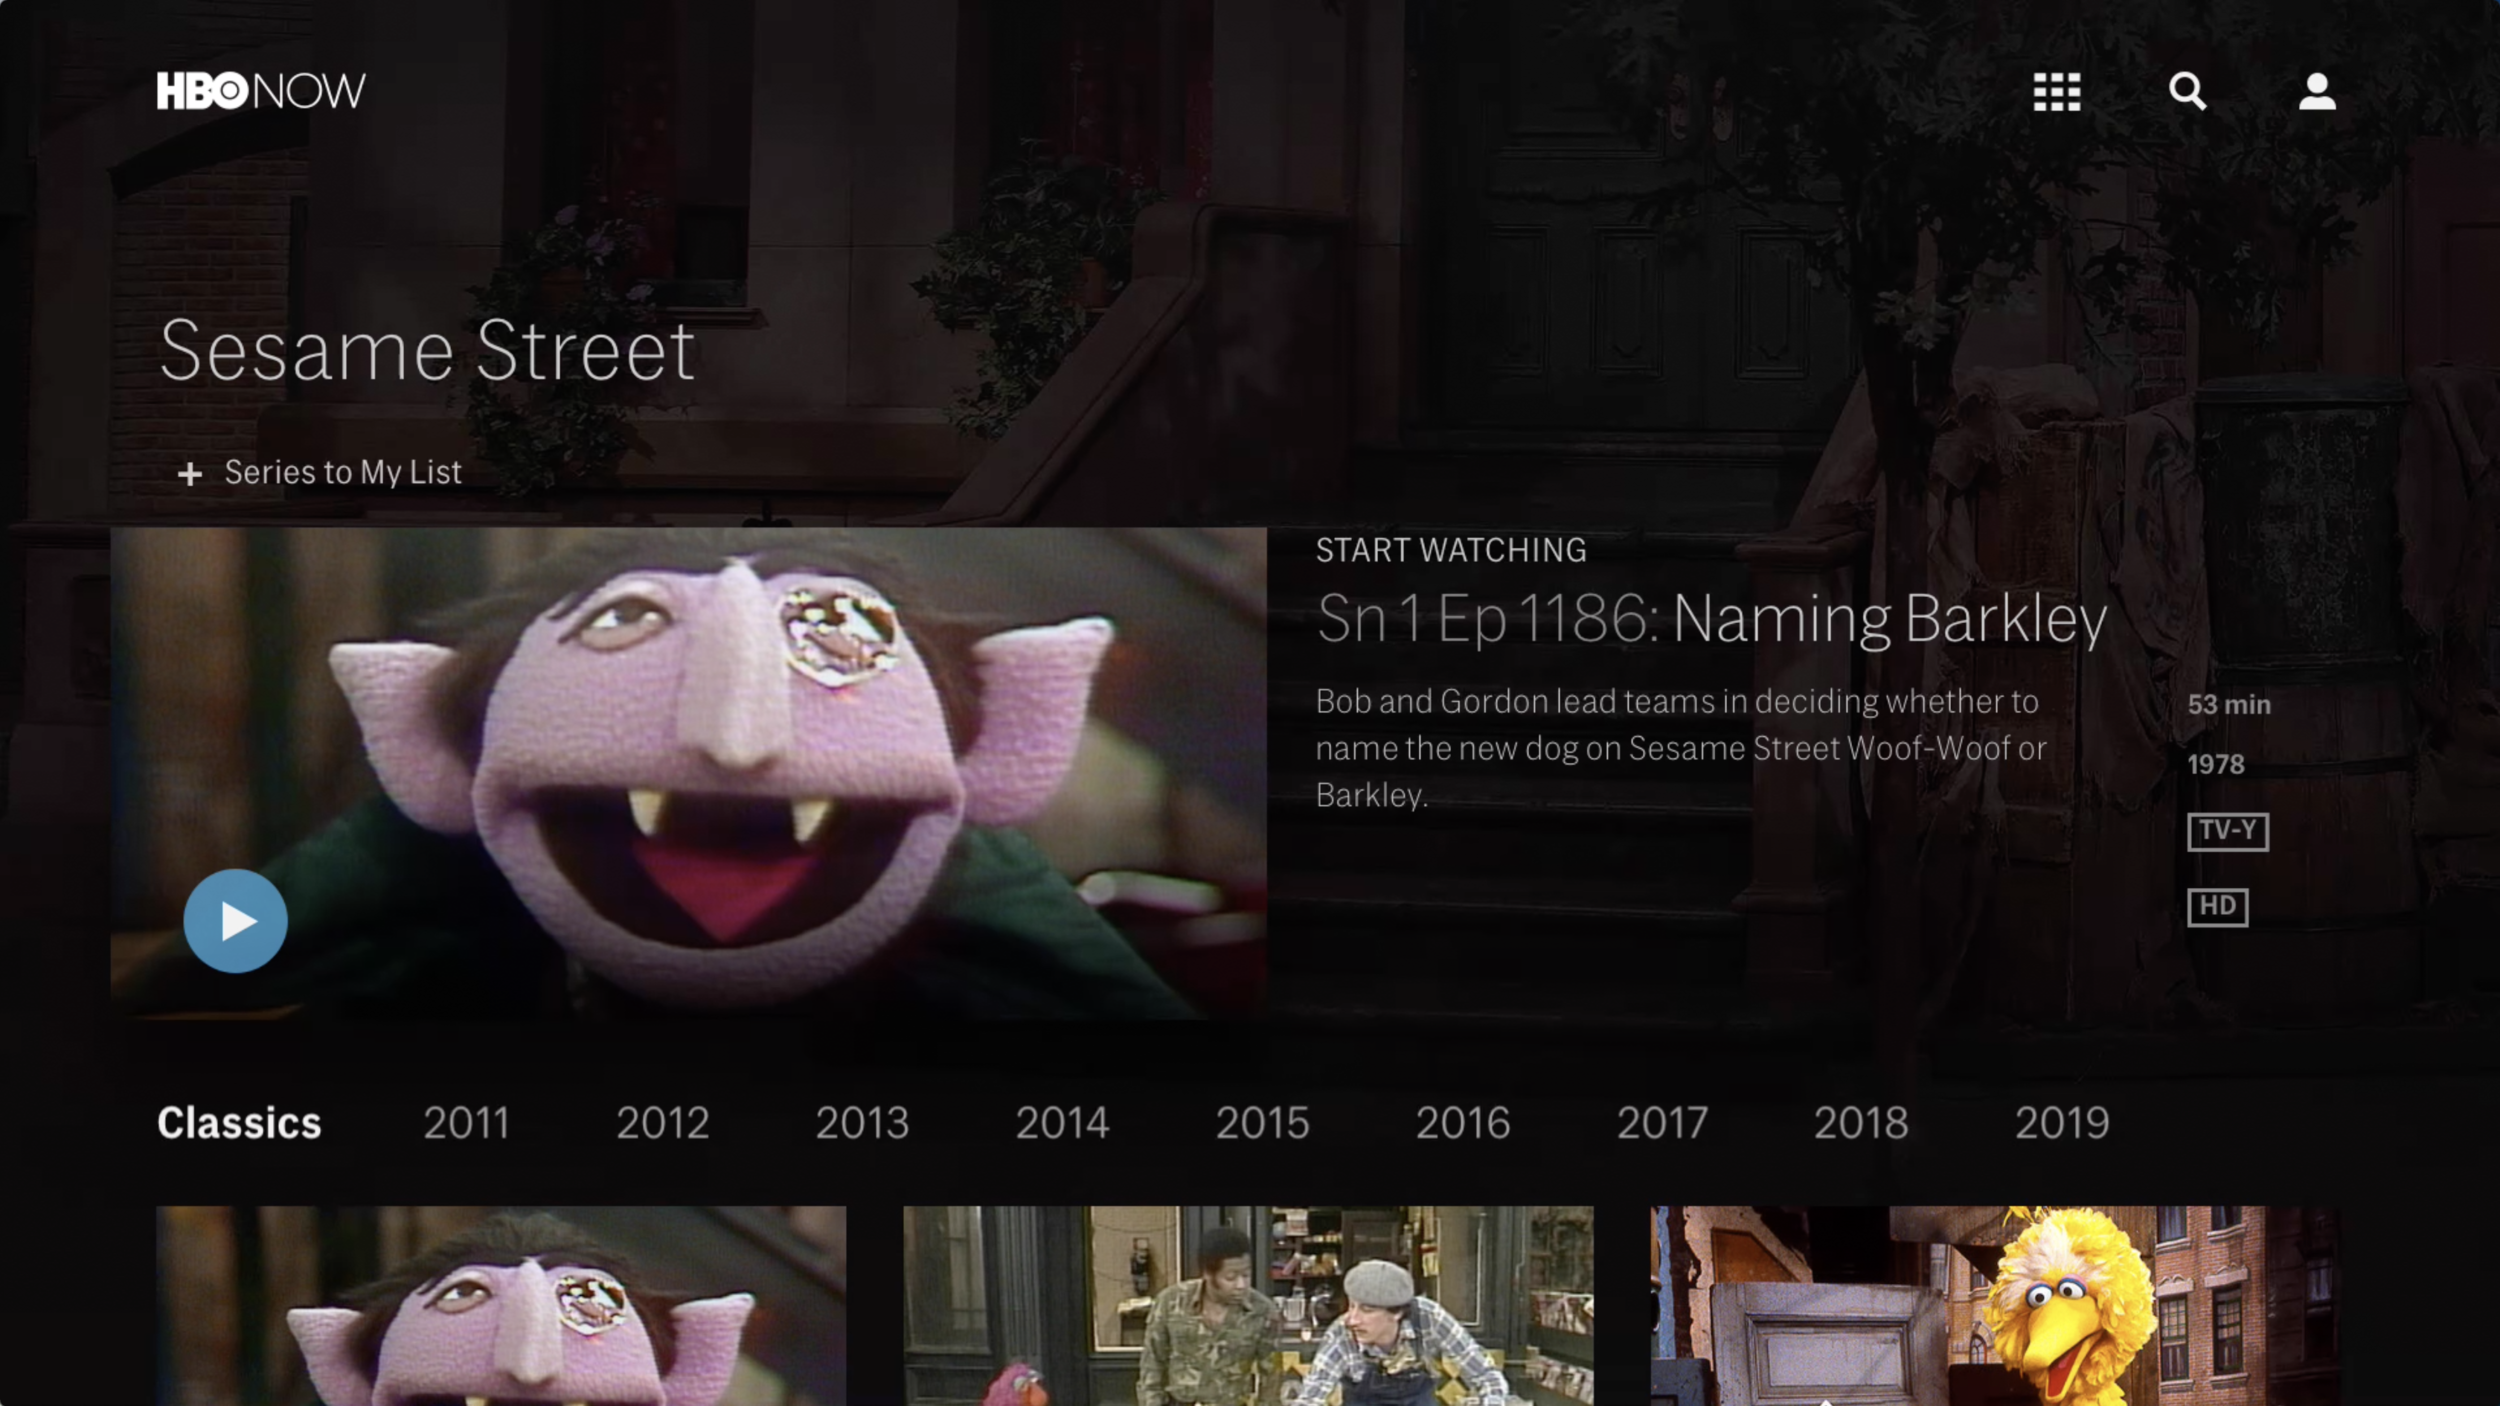 A sample of Sesame Street content on HBO Now (US) streaming service